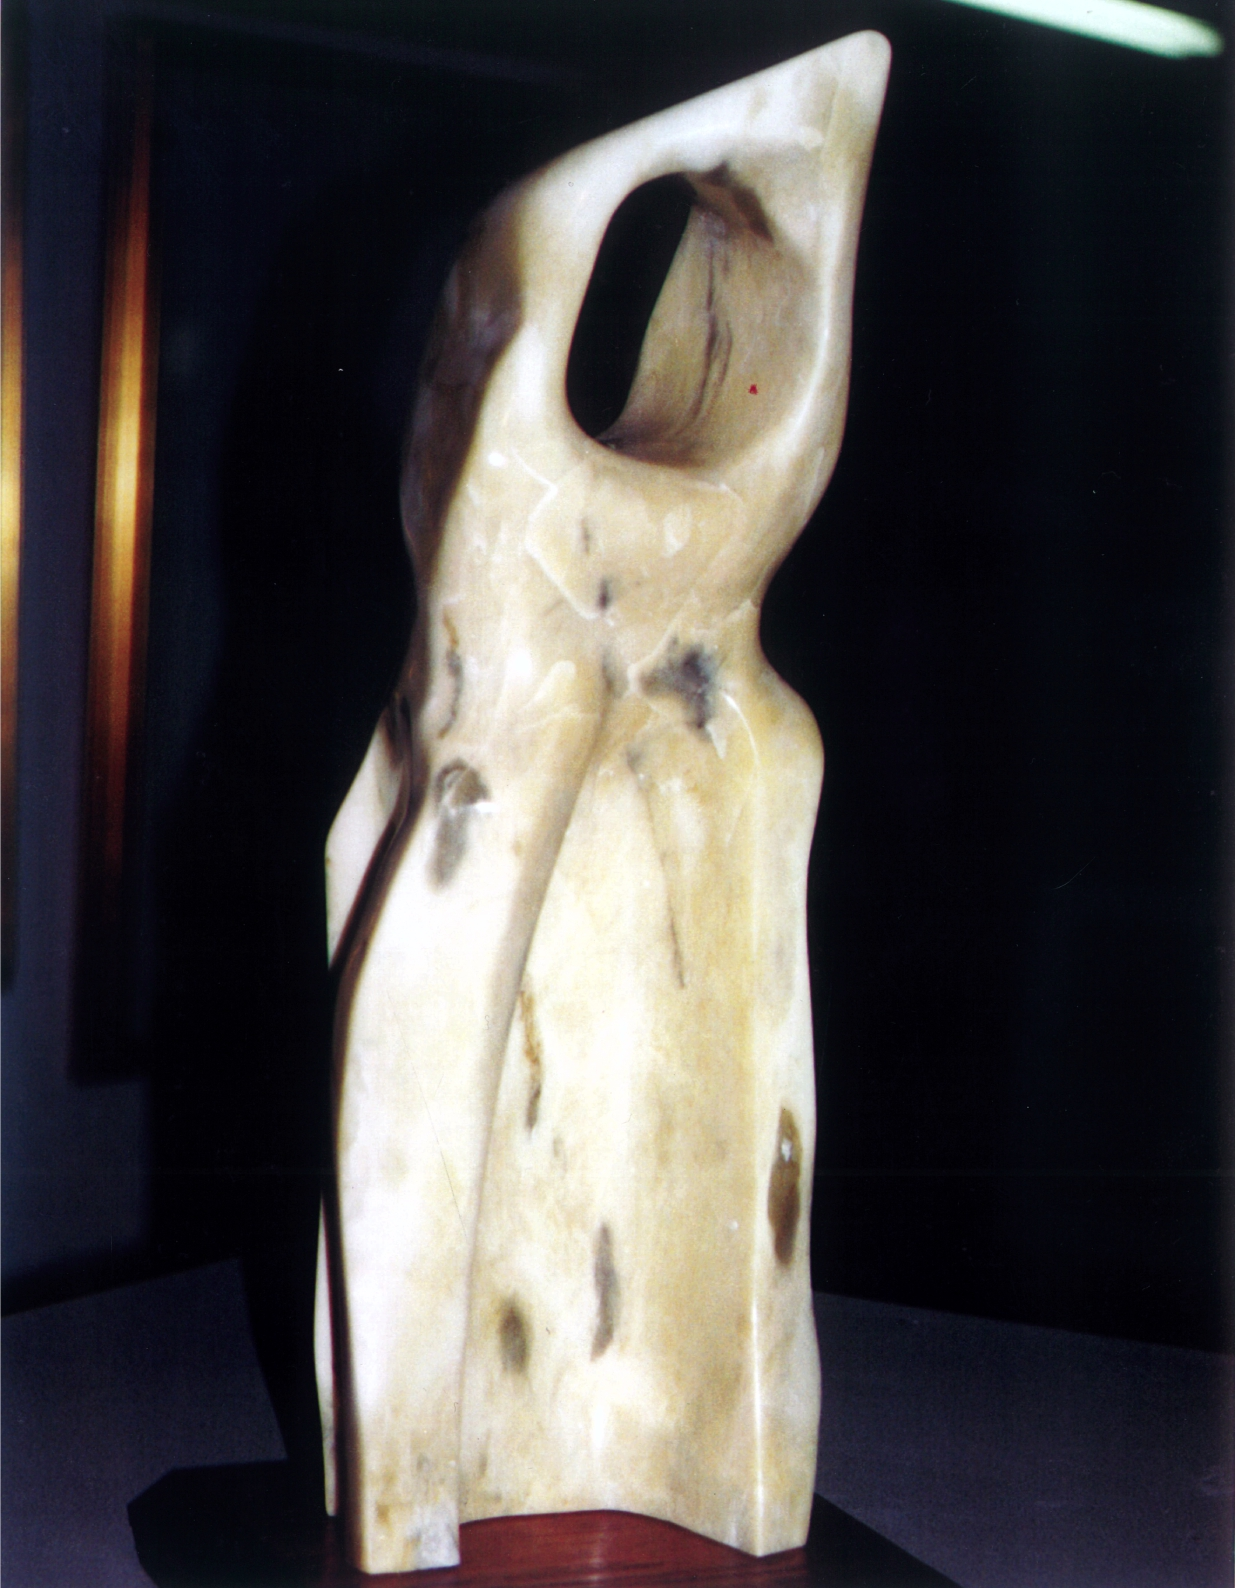 The Habit - 1998 - Carved from Newfoundland Soapstone. Artist: Steven Zimmerman